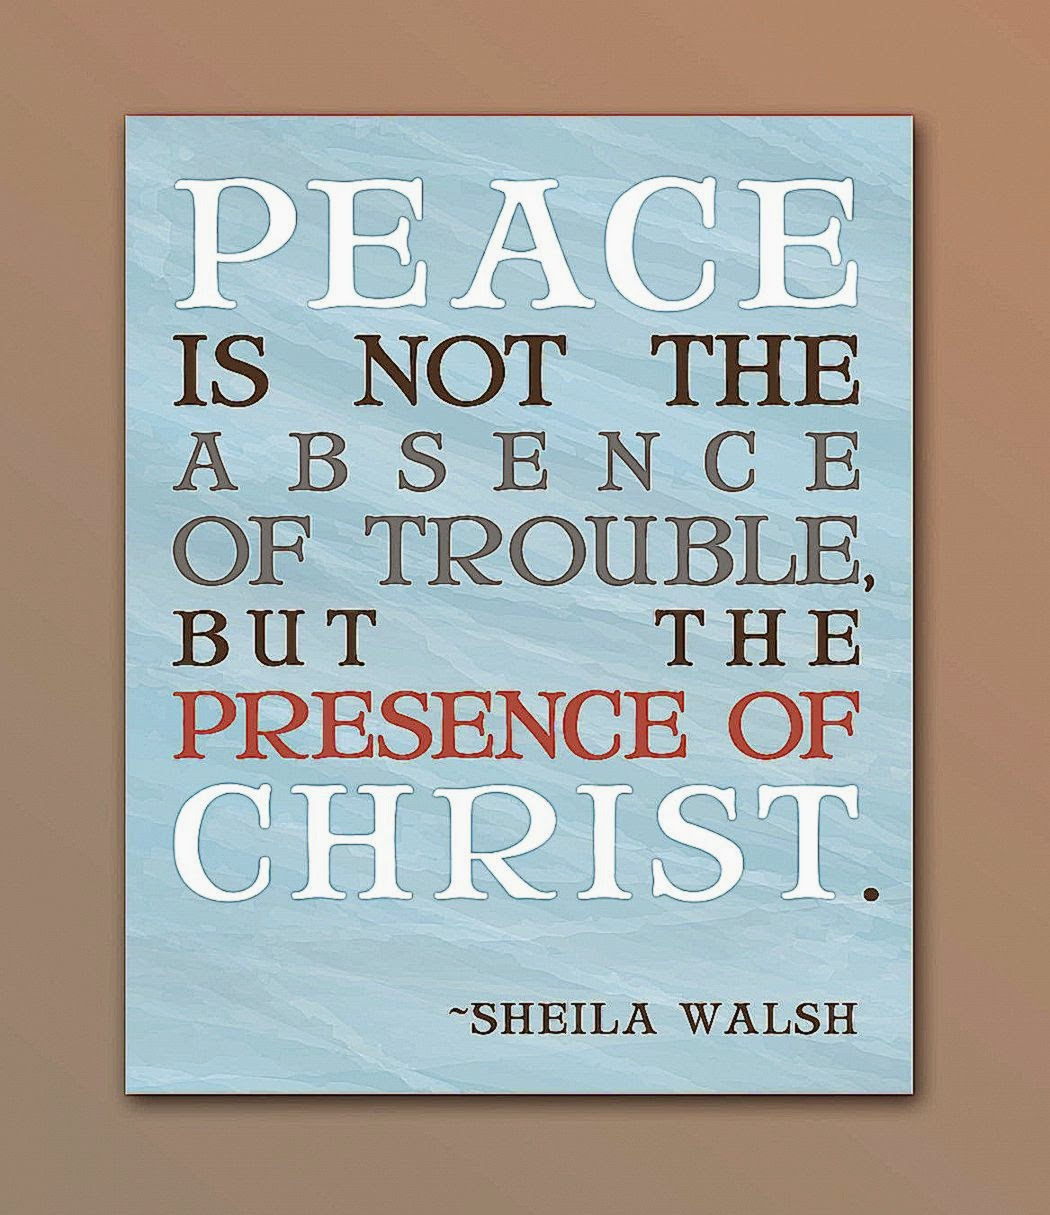 Christian Inspirational Quotes Christmas Quote Christian  Inspiring Quotes And Words In Life